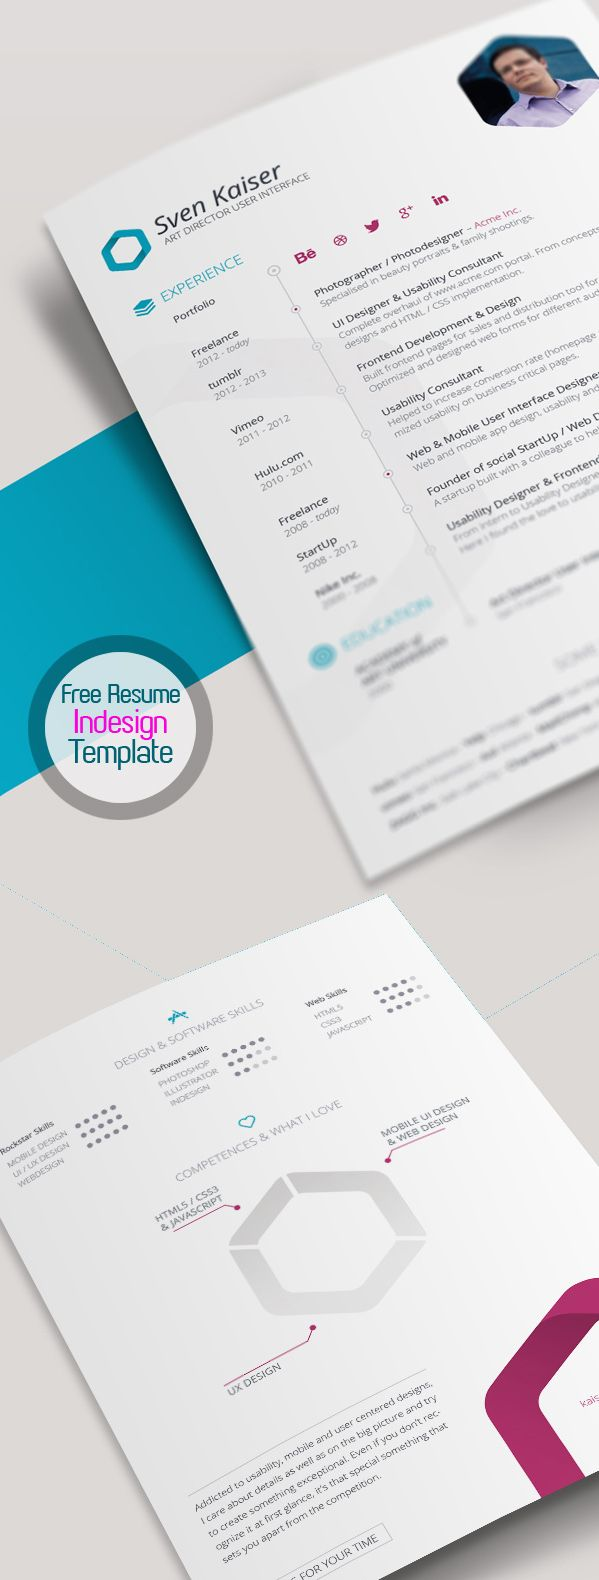 Free Modern Resume Templates Free Resume Template For Indesign Vita  Cv  Job Searchresume